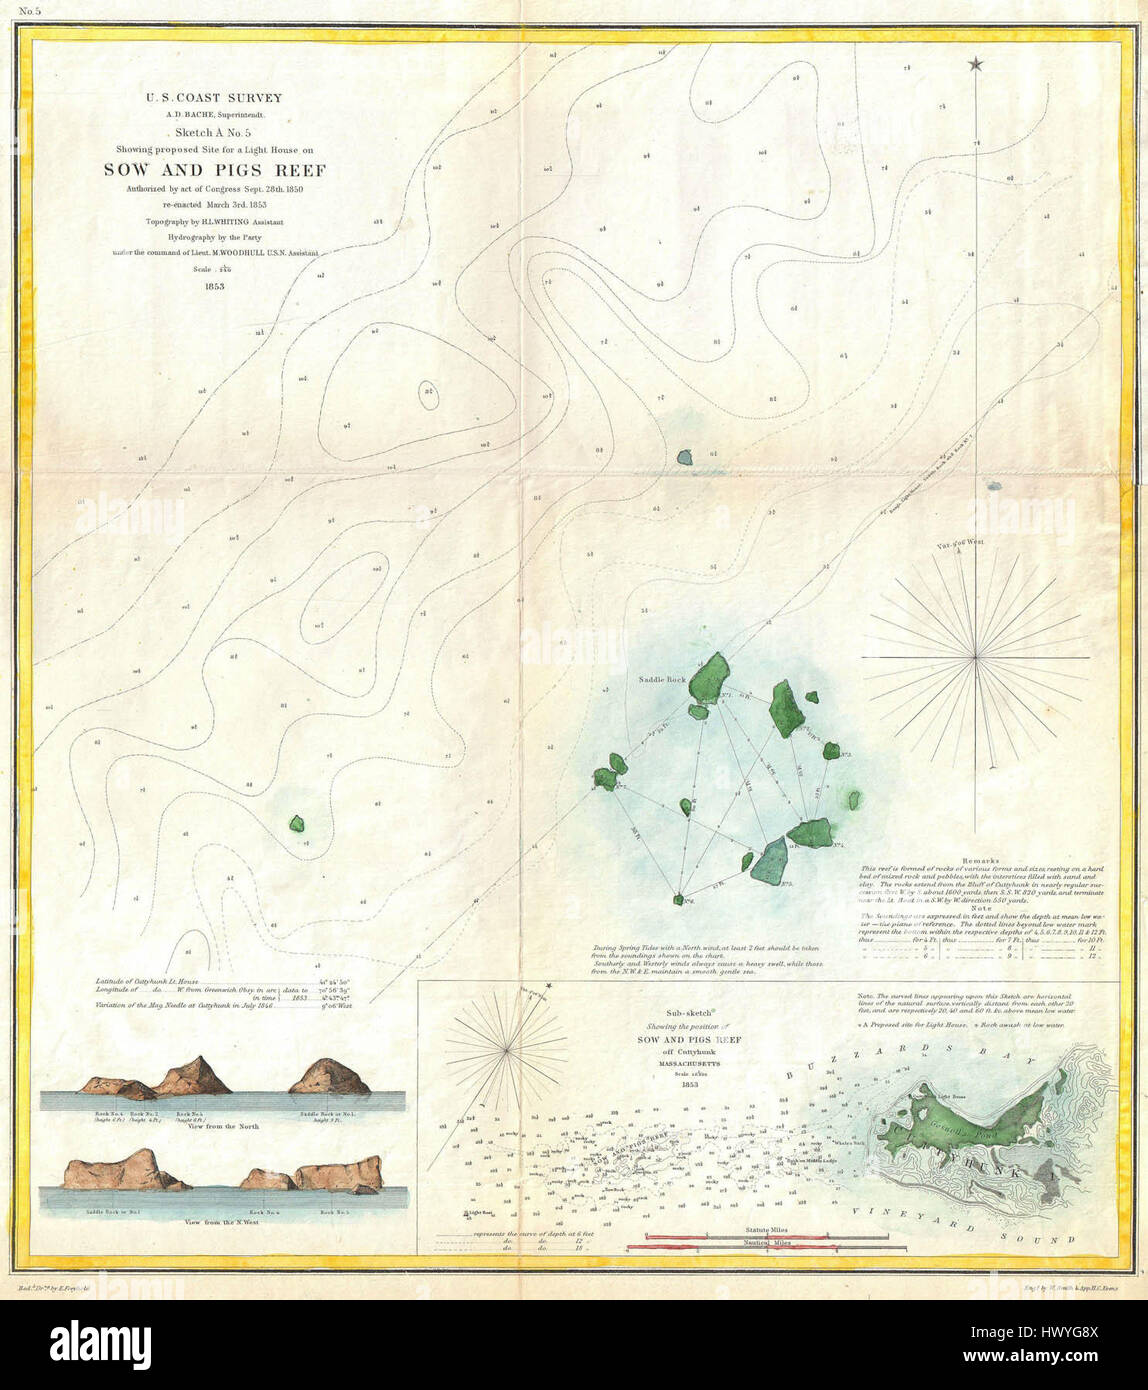 1853 US Coast Survey Map or Chart of Sow and Pigs Reef off